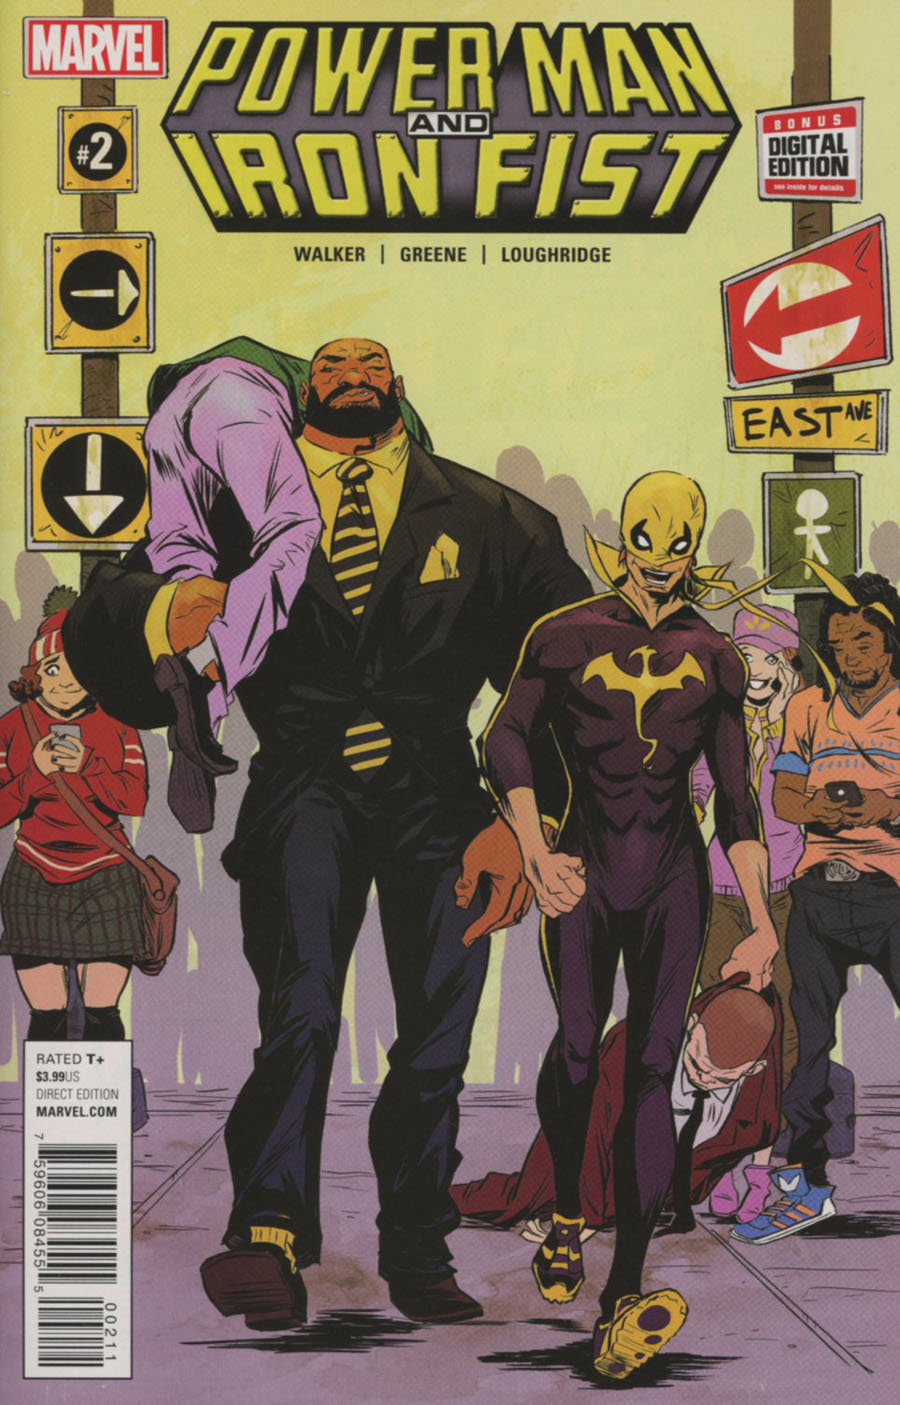 Power Man And Iron Fist Vol 3 #2 Cover A Regular Sanford Greene Cover